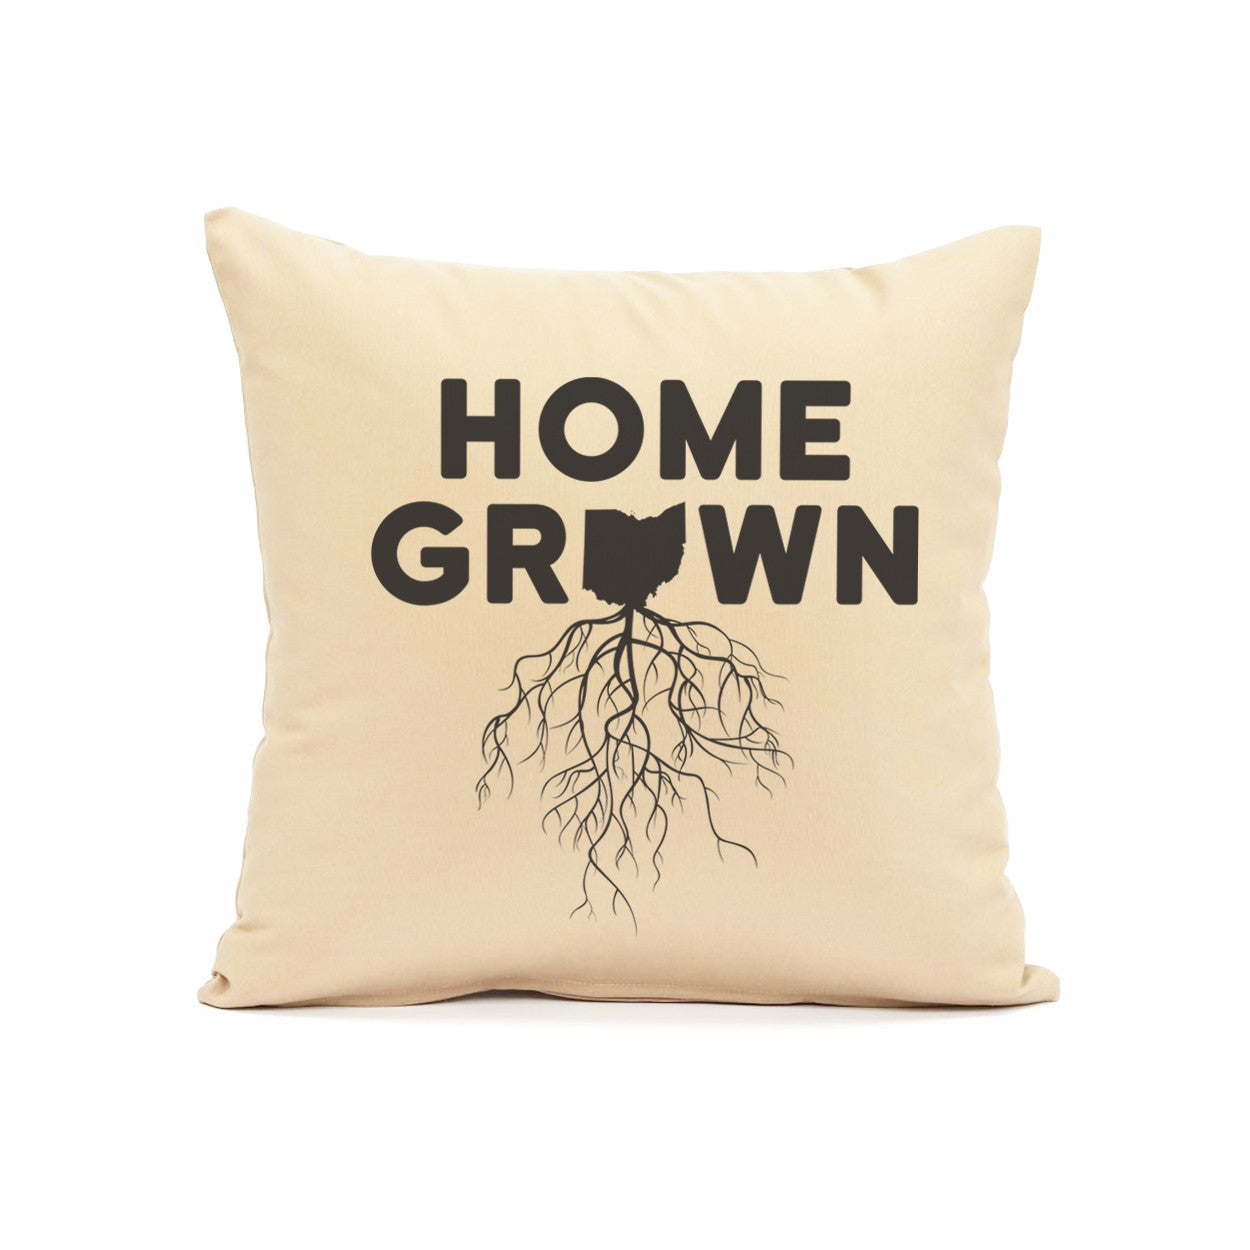 Home Grown Roots Ohio (Black) Throw Pillow - Clothe Ohio - Soft Ohio Shirts